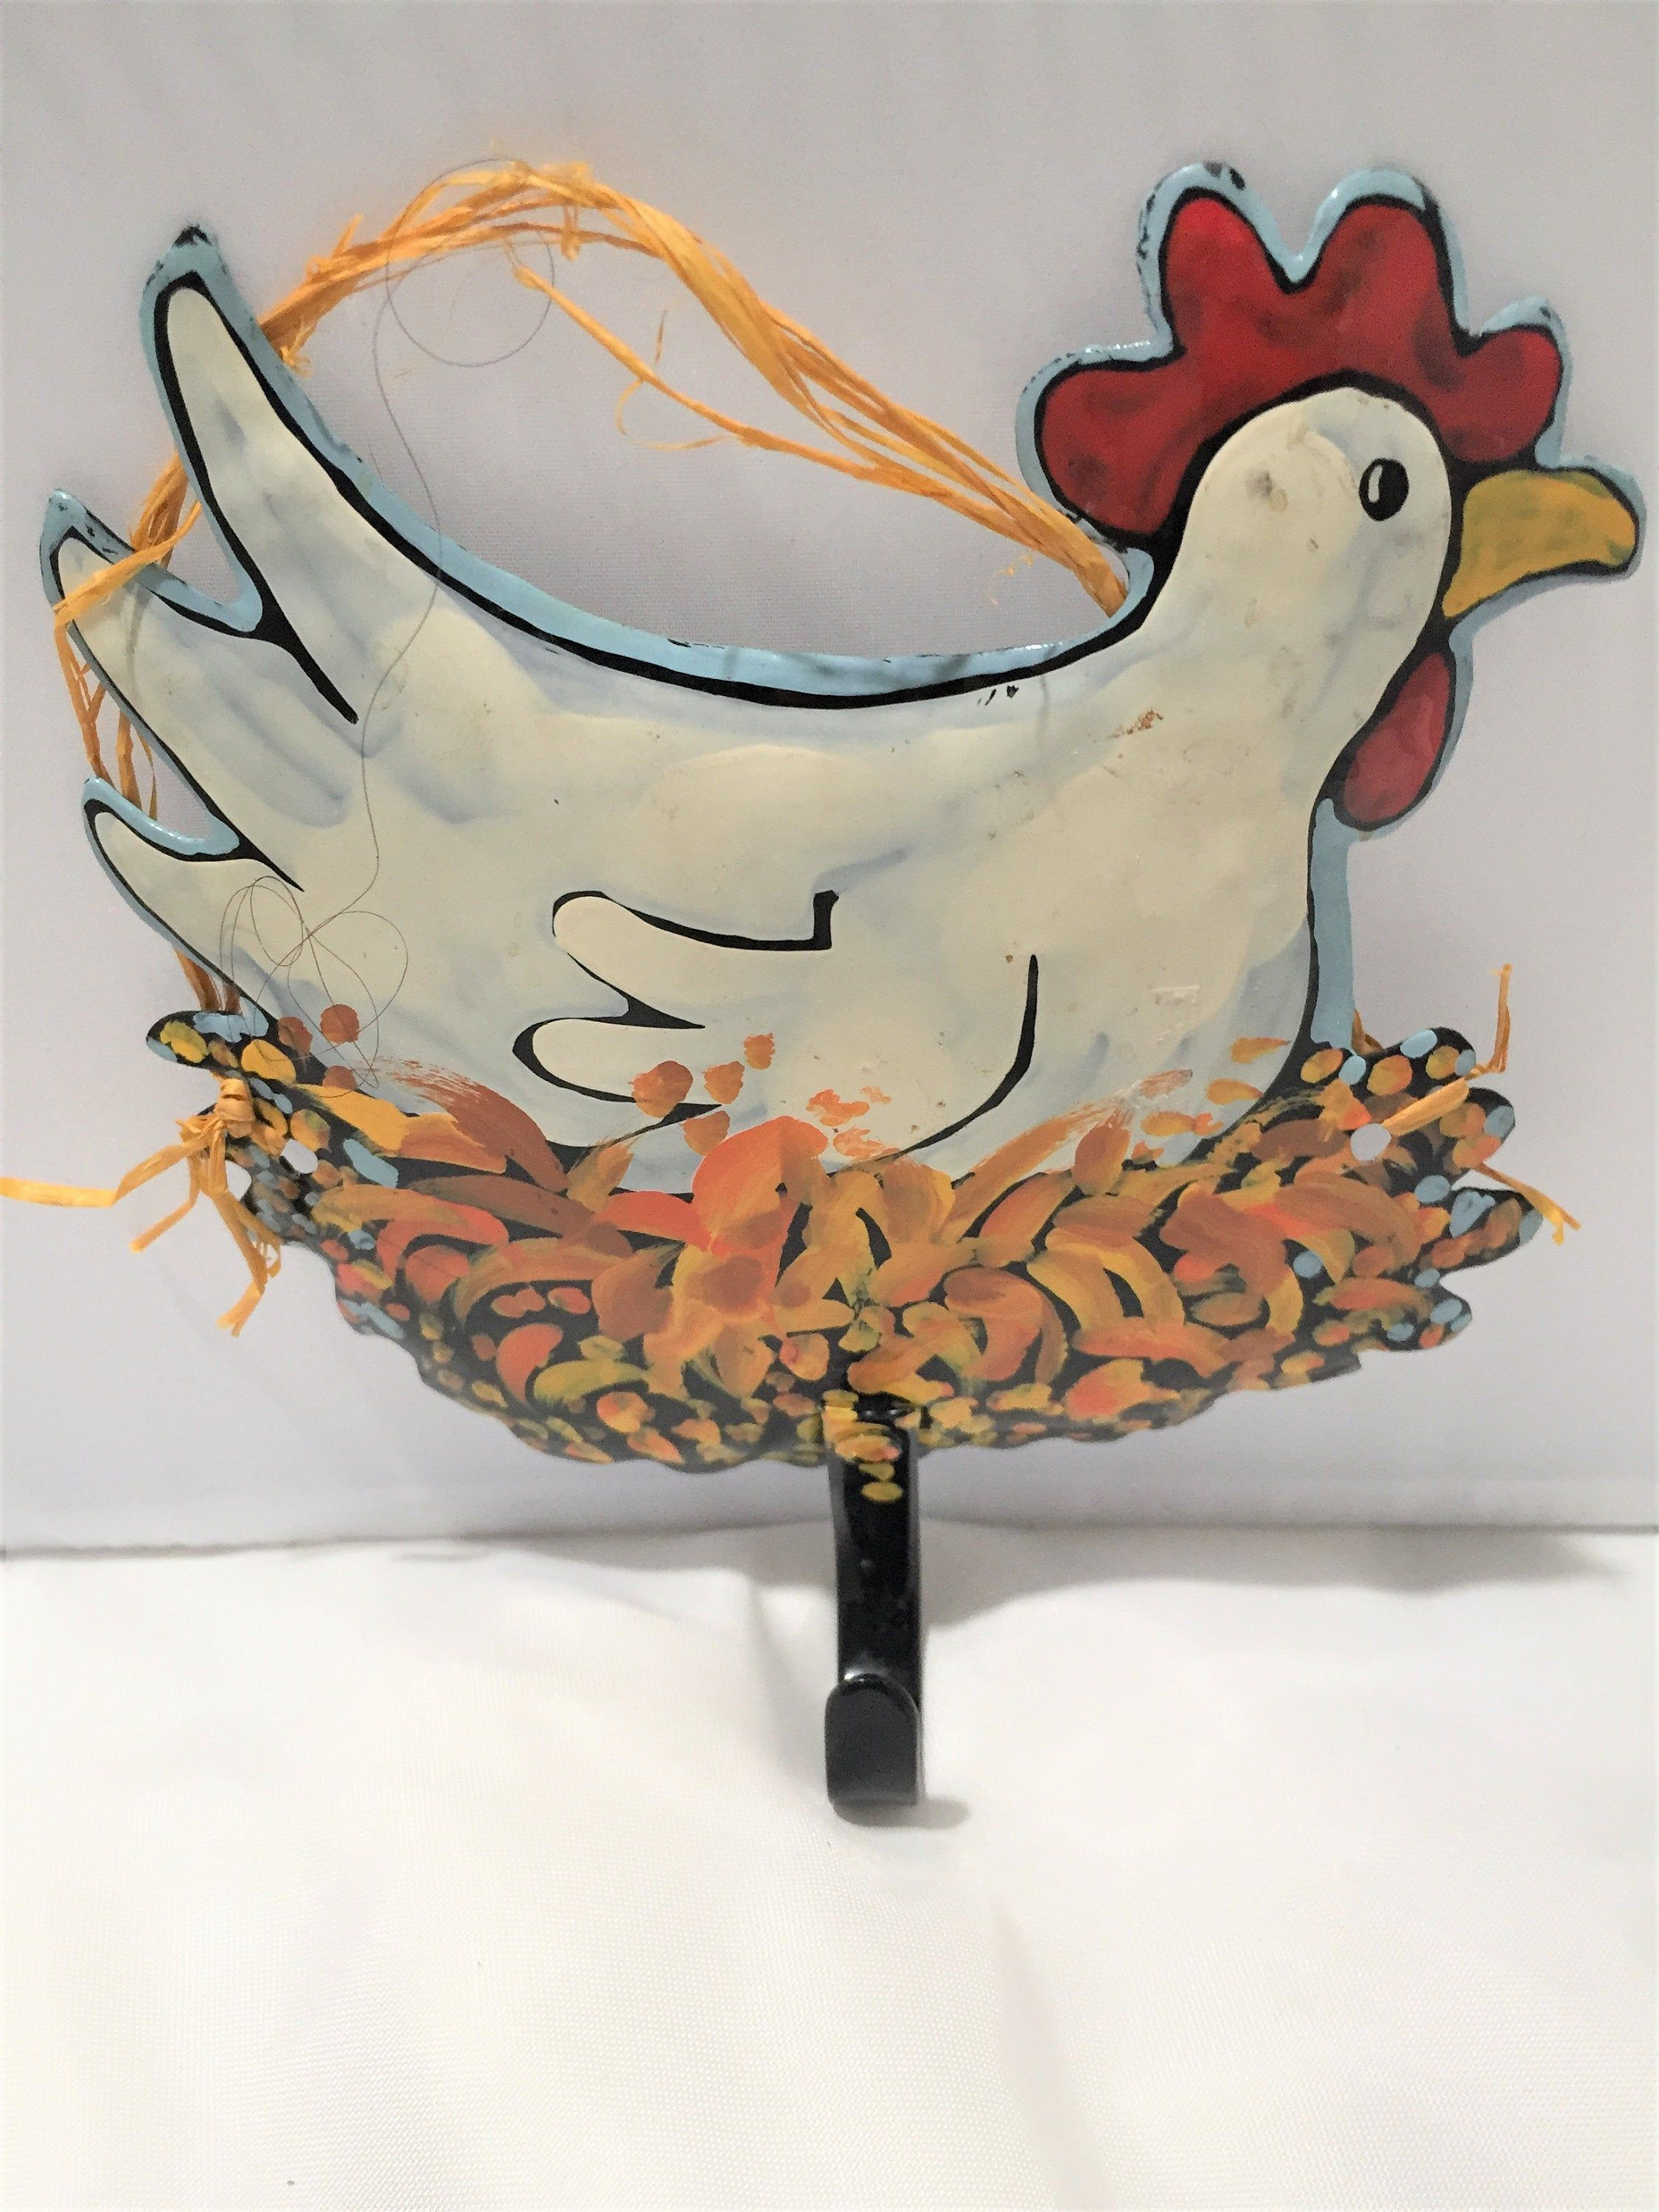 Tin Chicken Hook Tin Hen Tea Towel Hook Nesting Chicken Pot Holder Hook Free Usa Shipping Hassle Free Returns Everything Vintage Kitchen Tea Towels Towel Hooks Vintage Kitchen